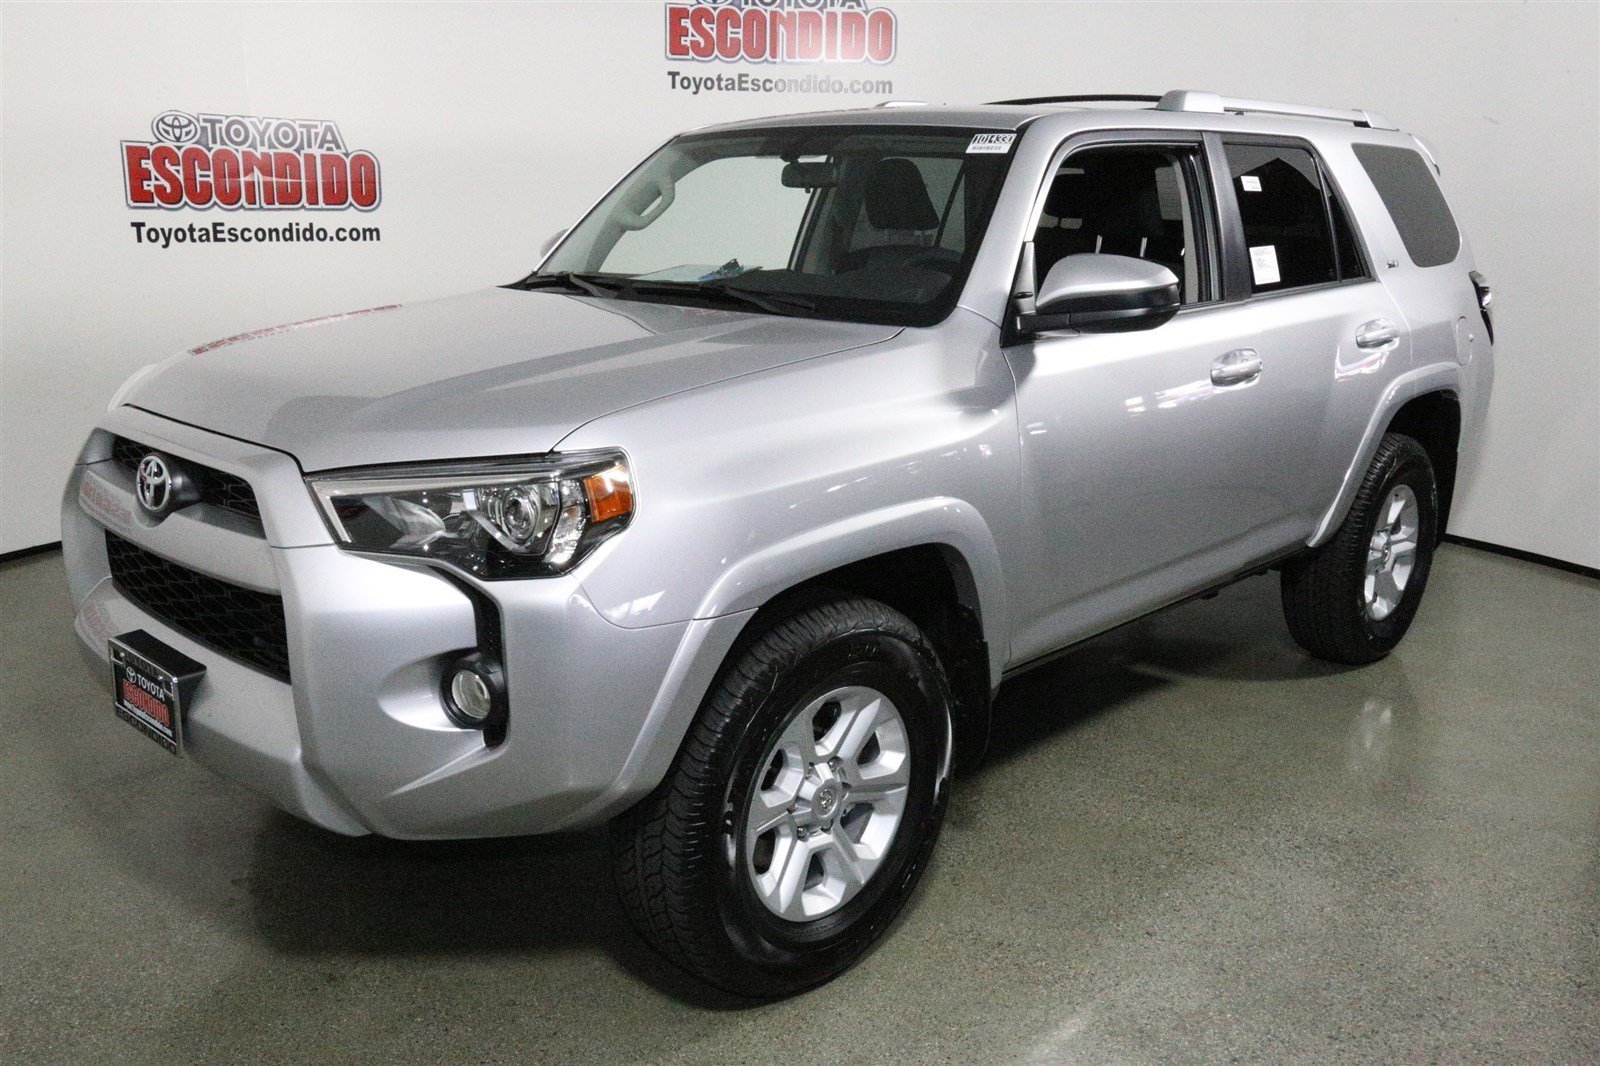 new 2016 toyota 4runner sr5 sport utility in escondido g5144172 toyota escondido. Black Bedroom Furniture Sets. Home Design Ideas